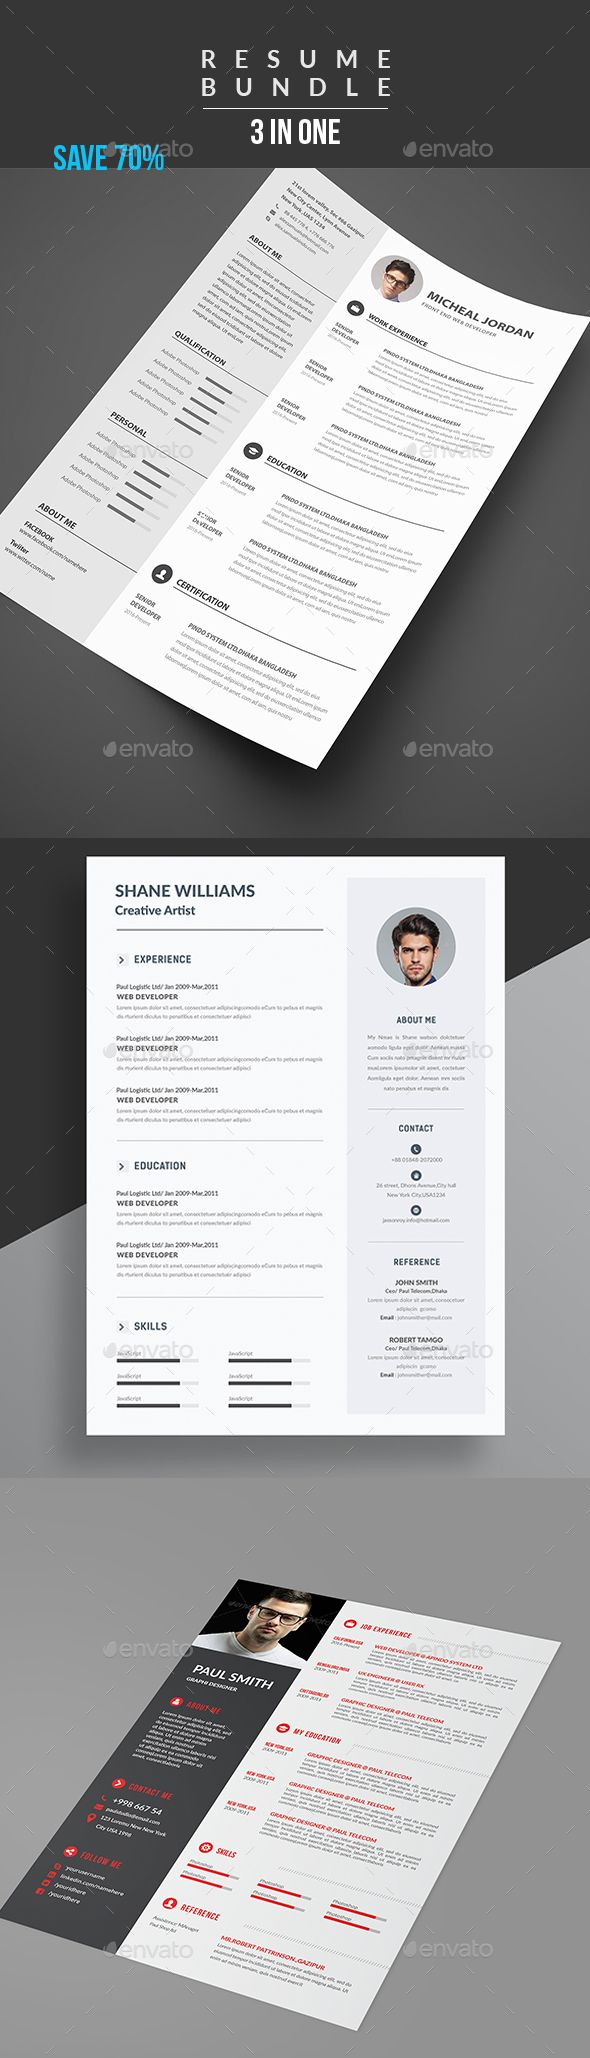 267 best cv resume images on pinterest cv design cv template